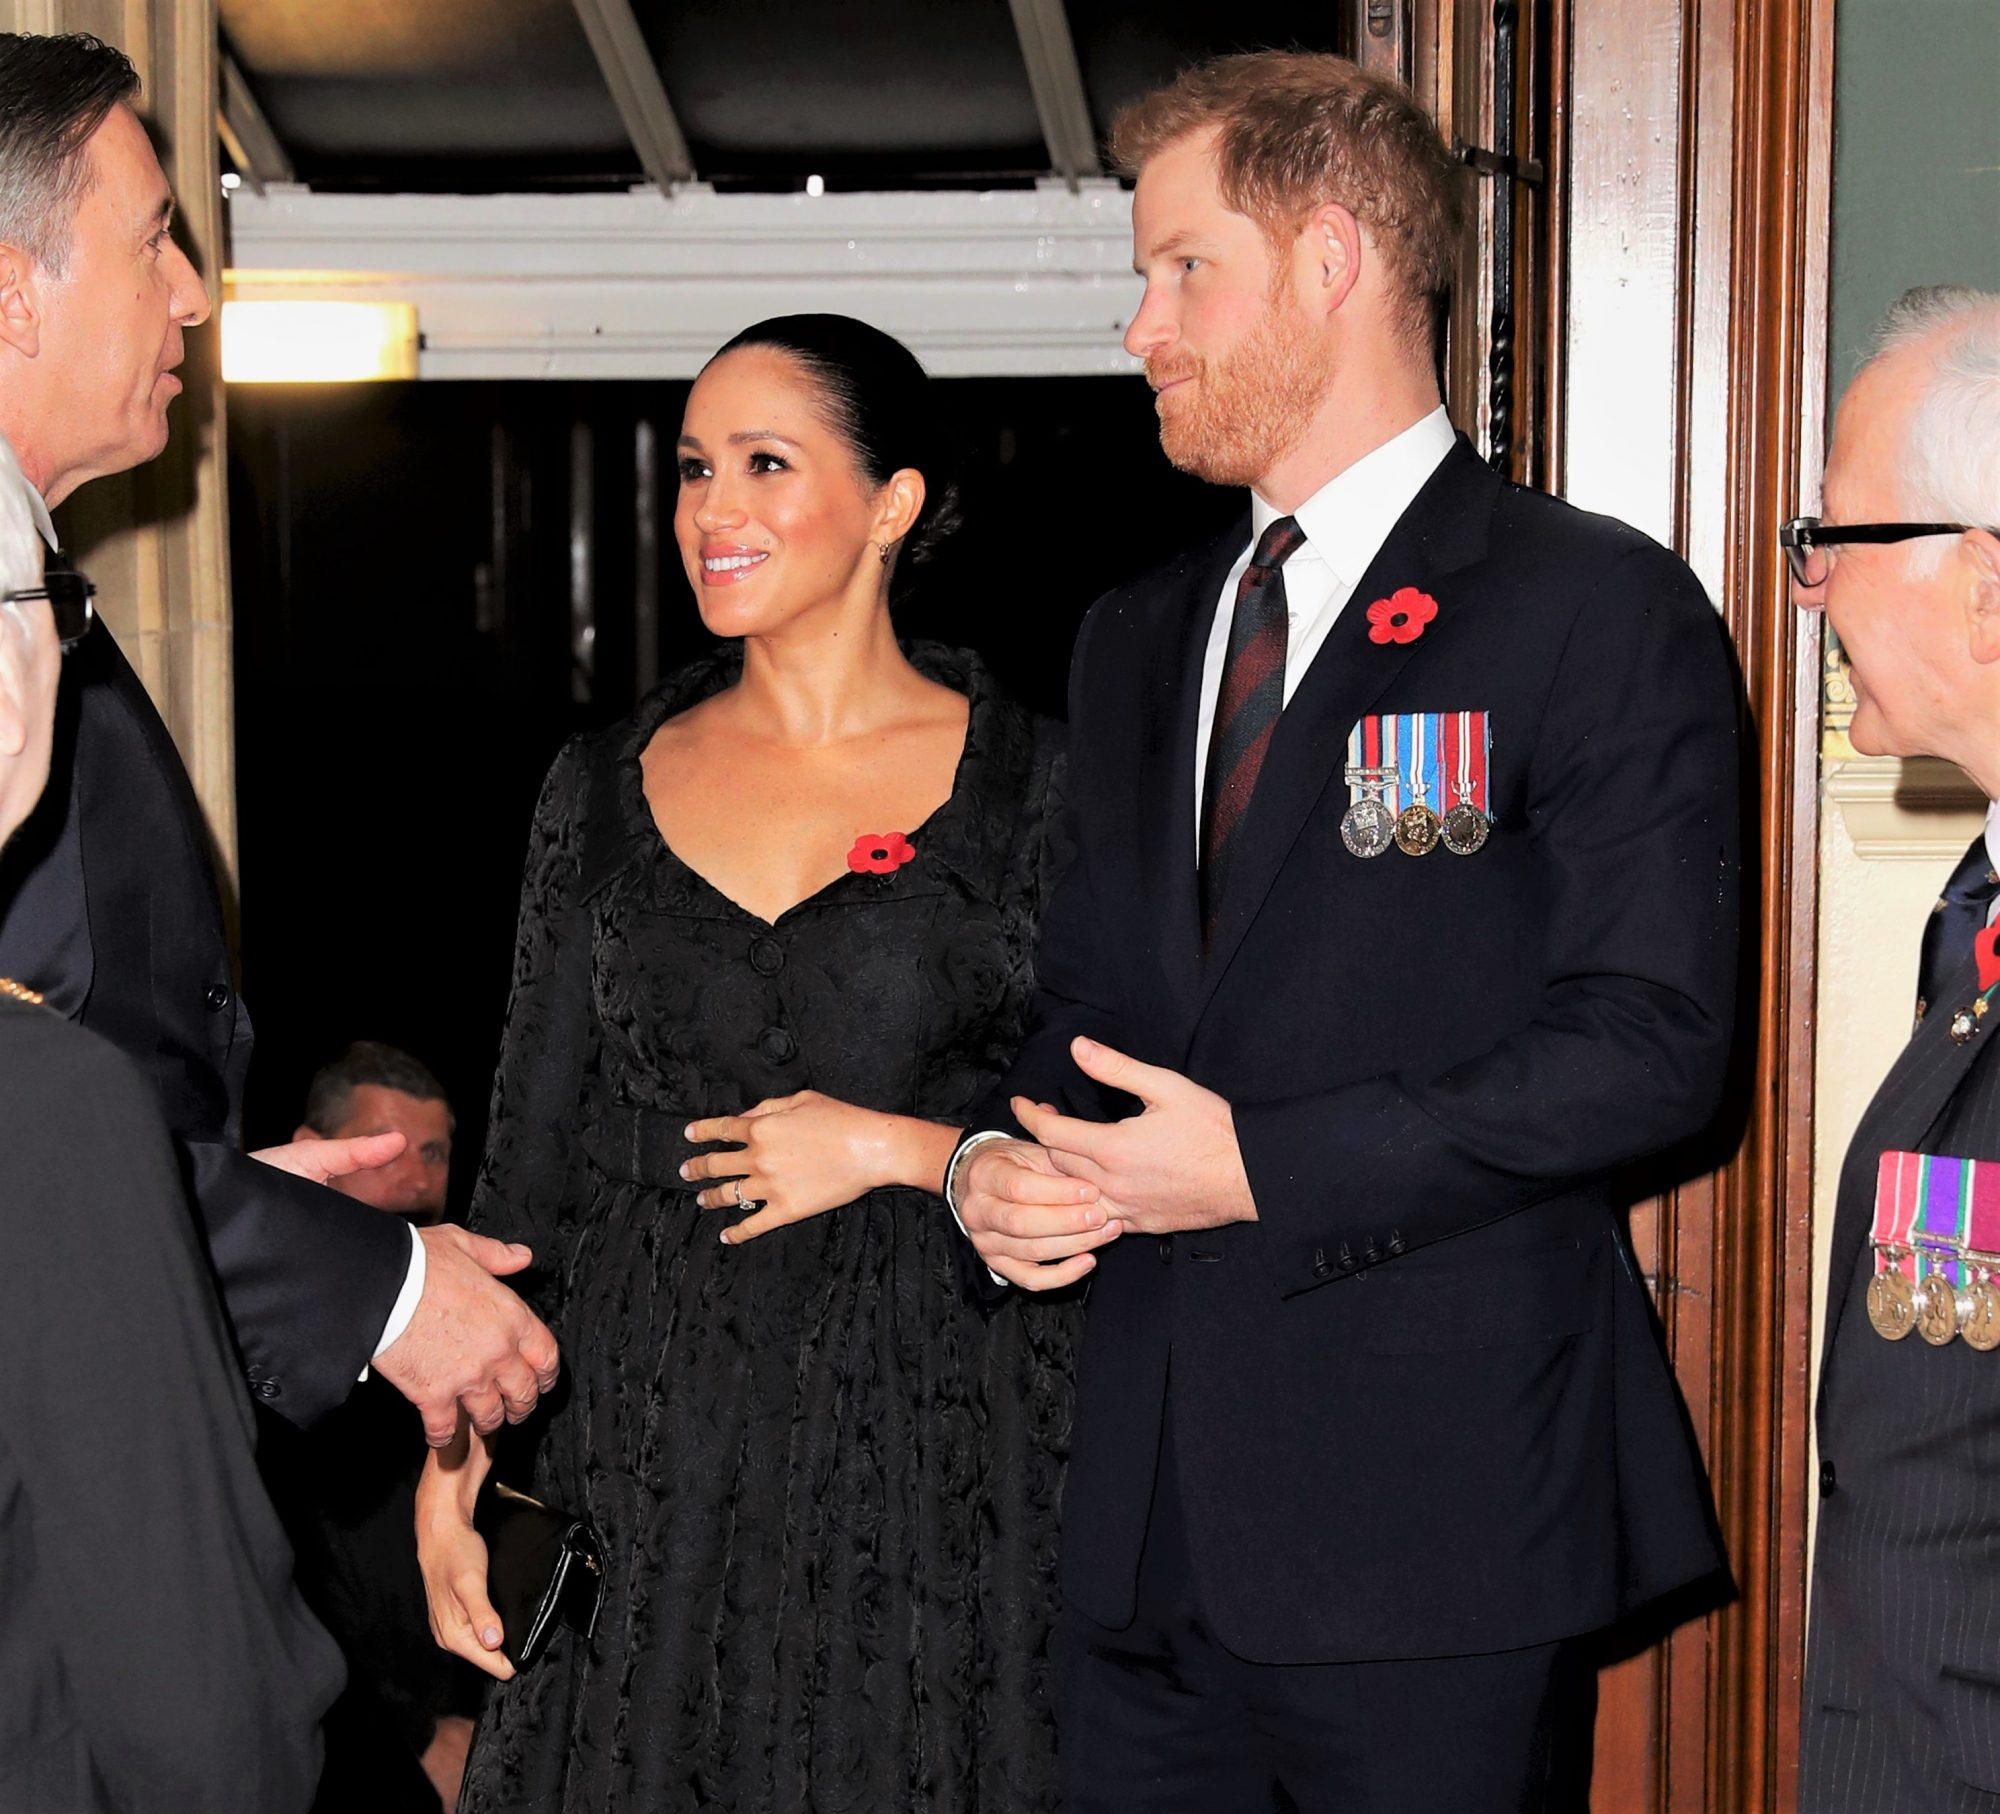 Meghan Markle Hand Over Belly and Prince Harry at the Royal British Legion Festival of Remembrance at the Royal Albert Hall